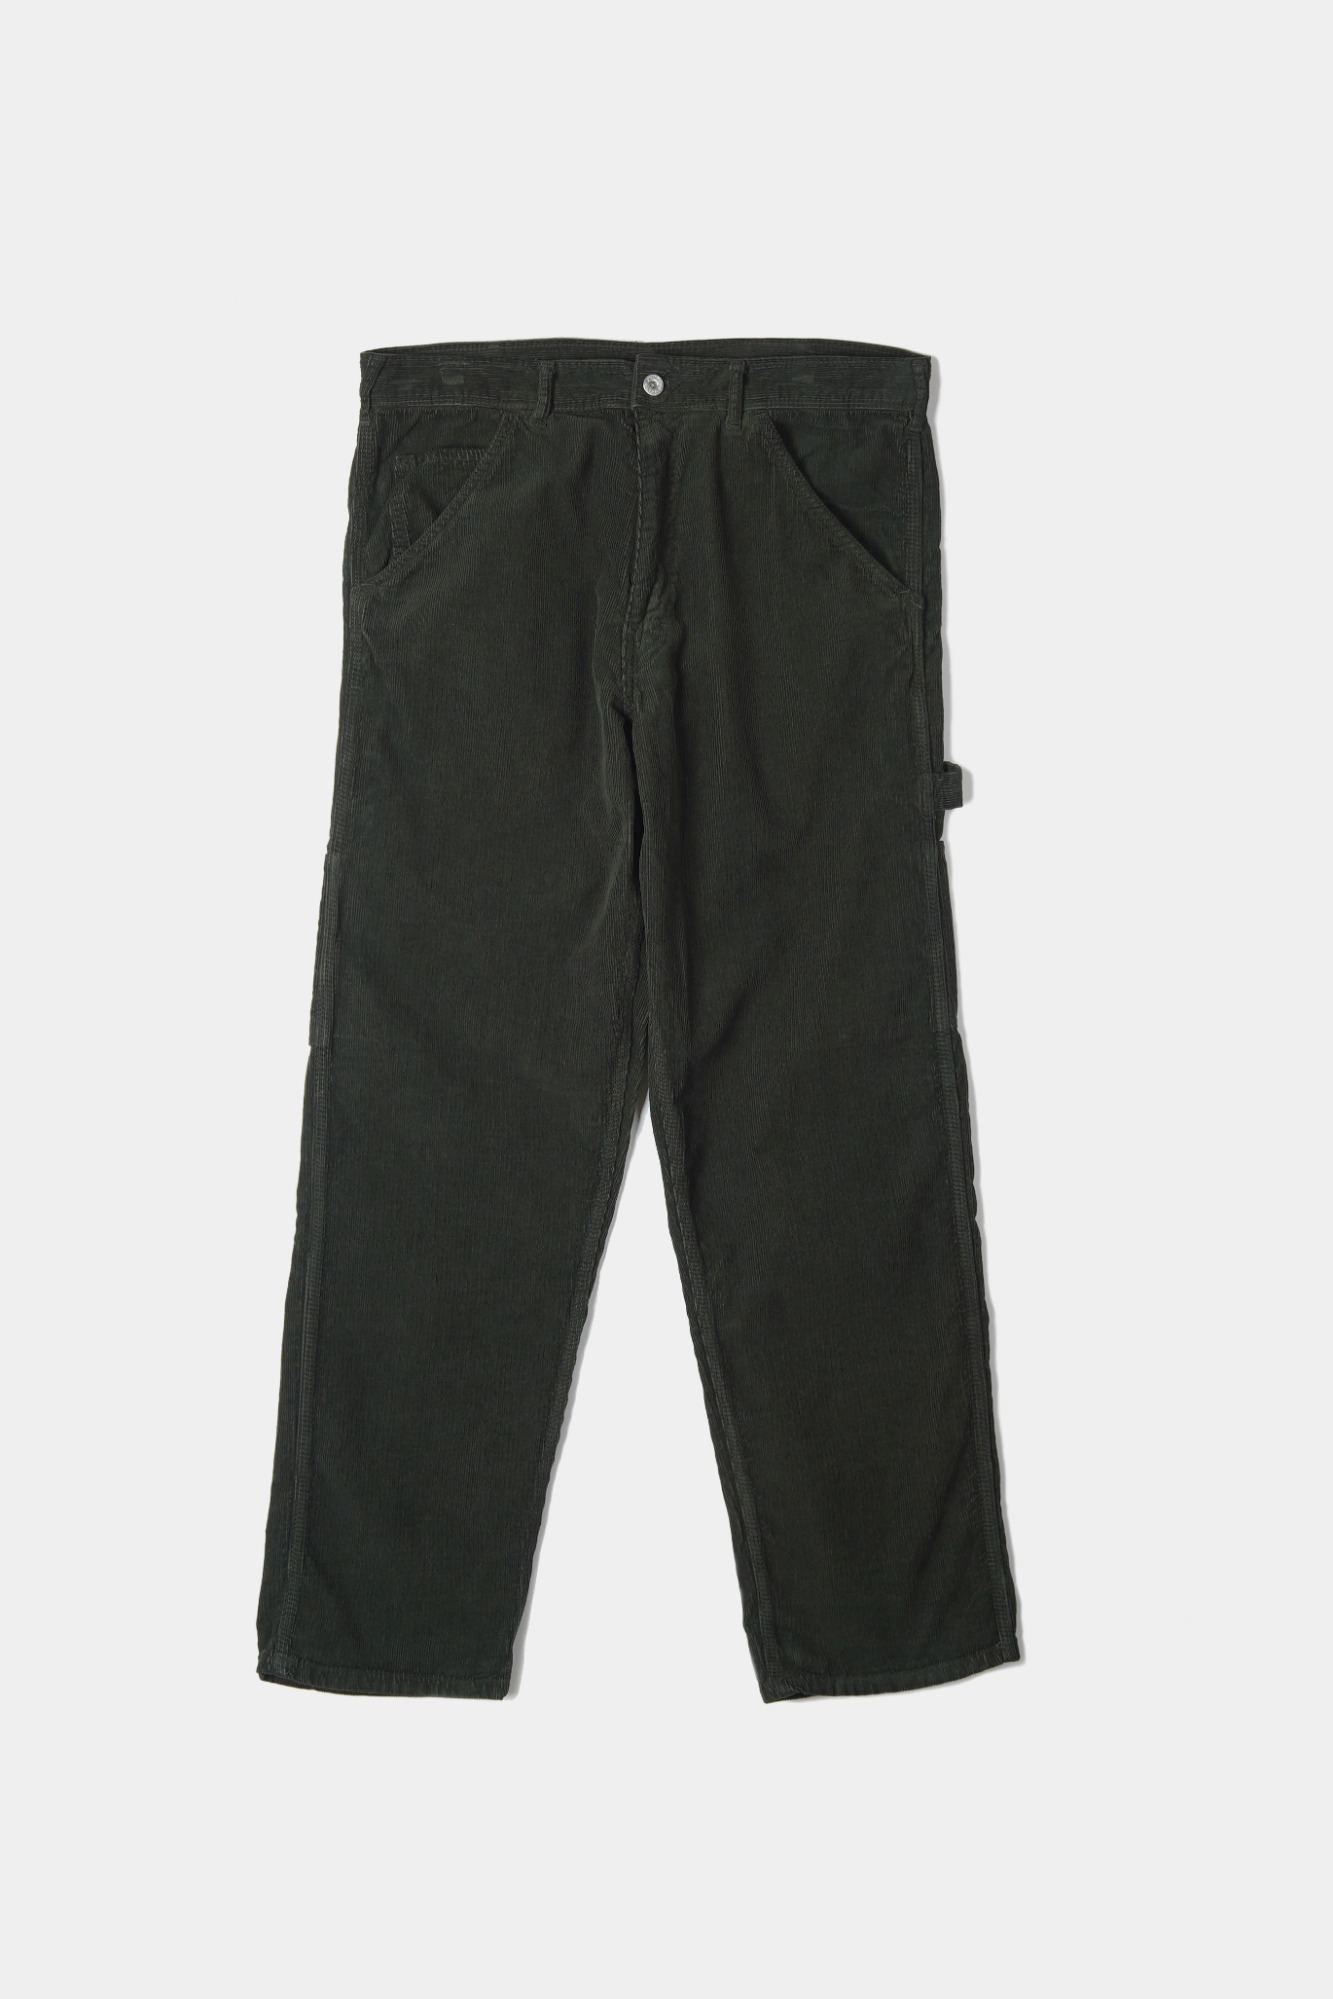 "STAN RAY OG Painter Pants Cord ""Olive Cord"""